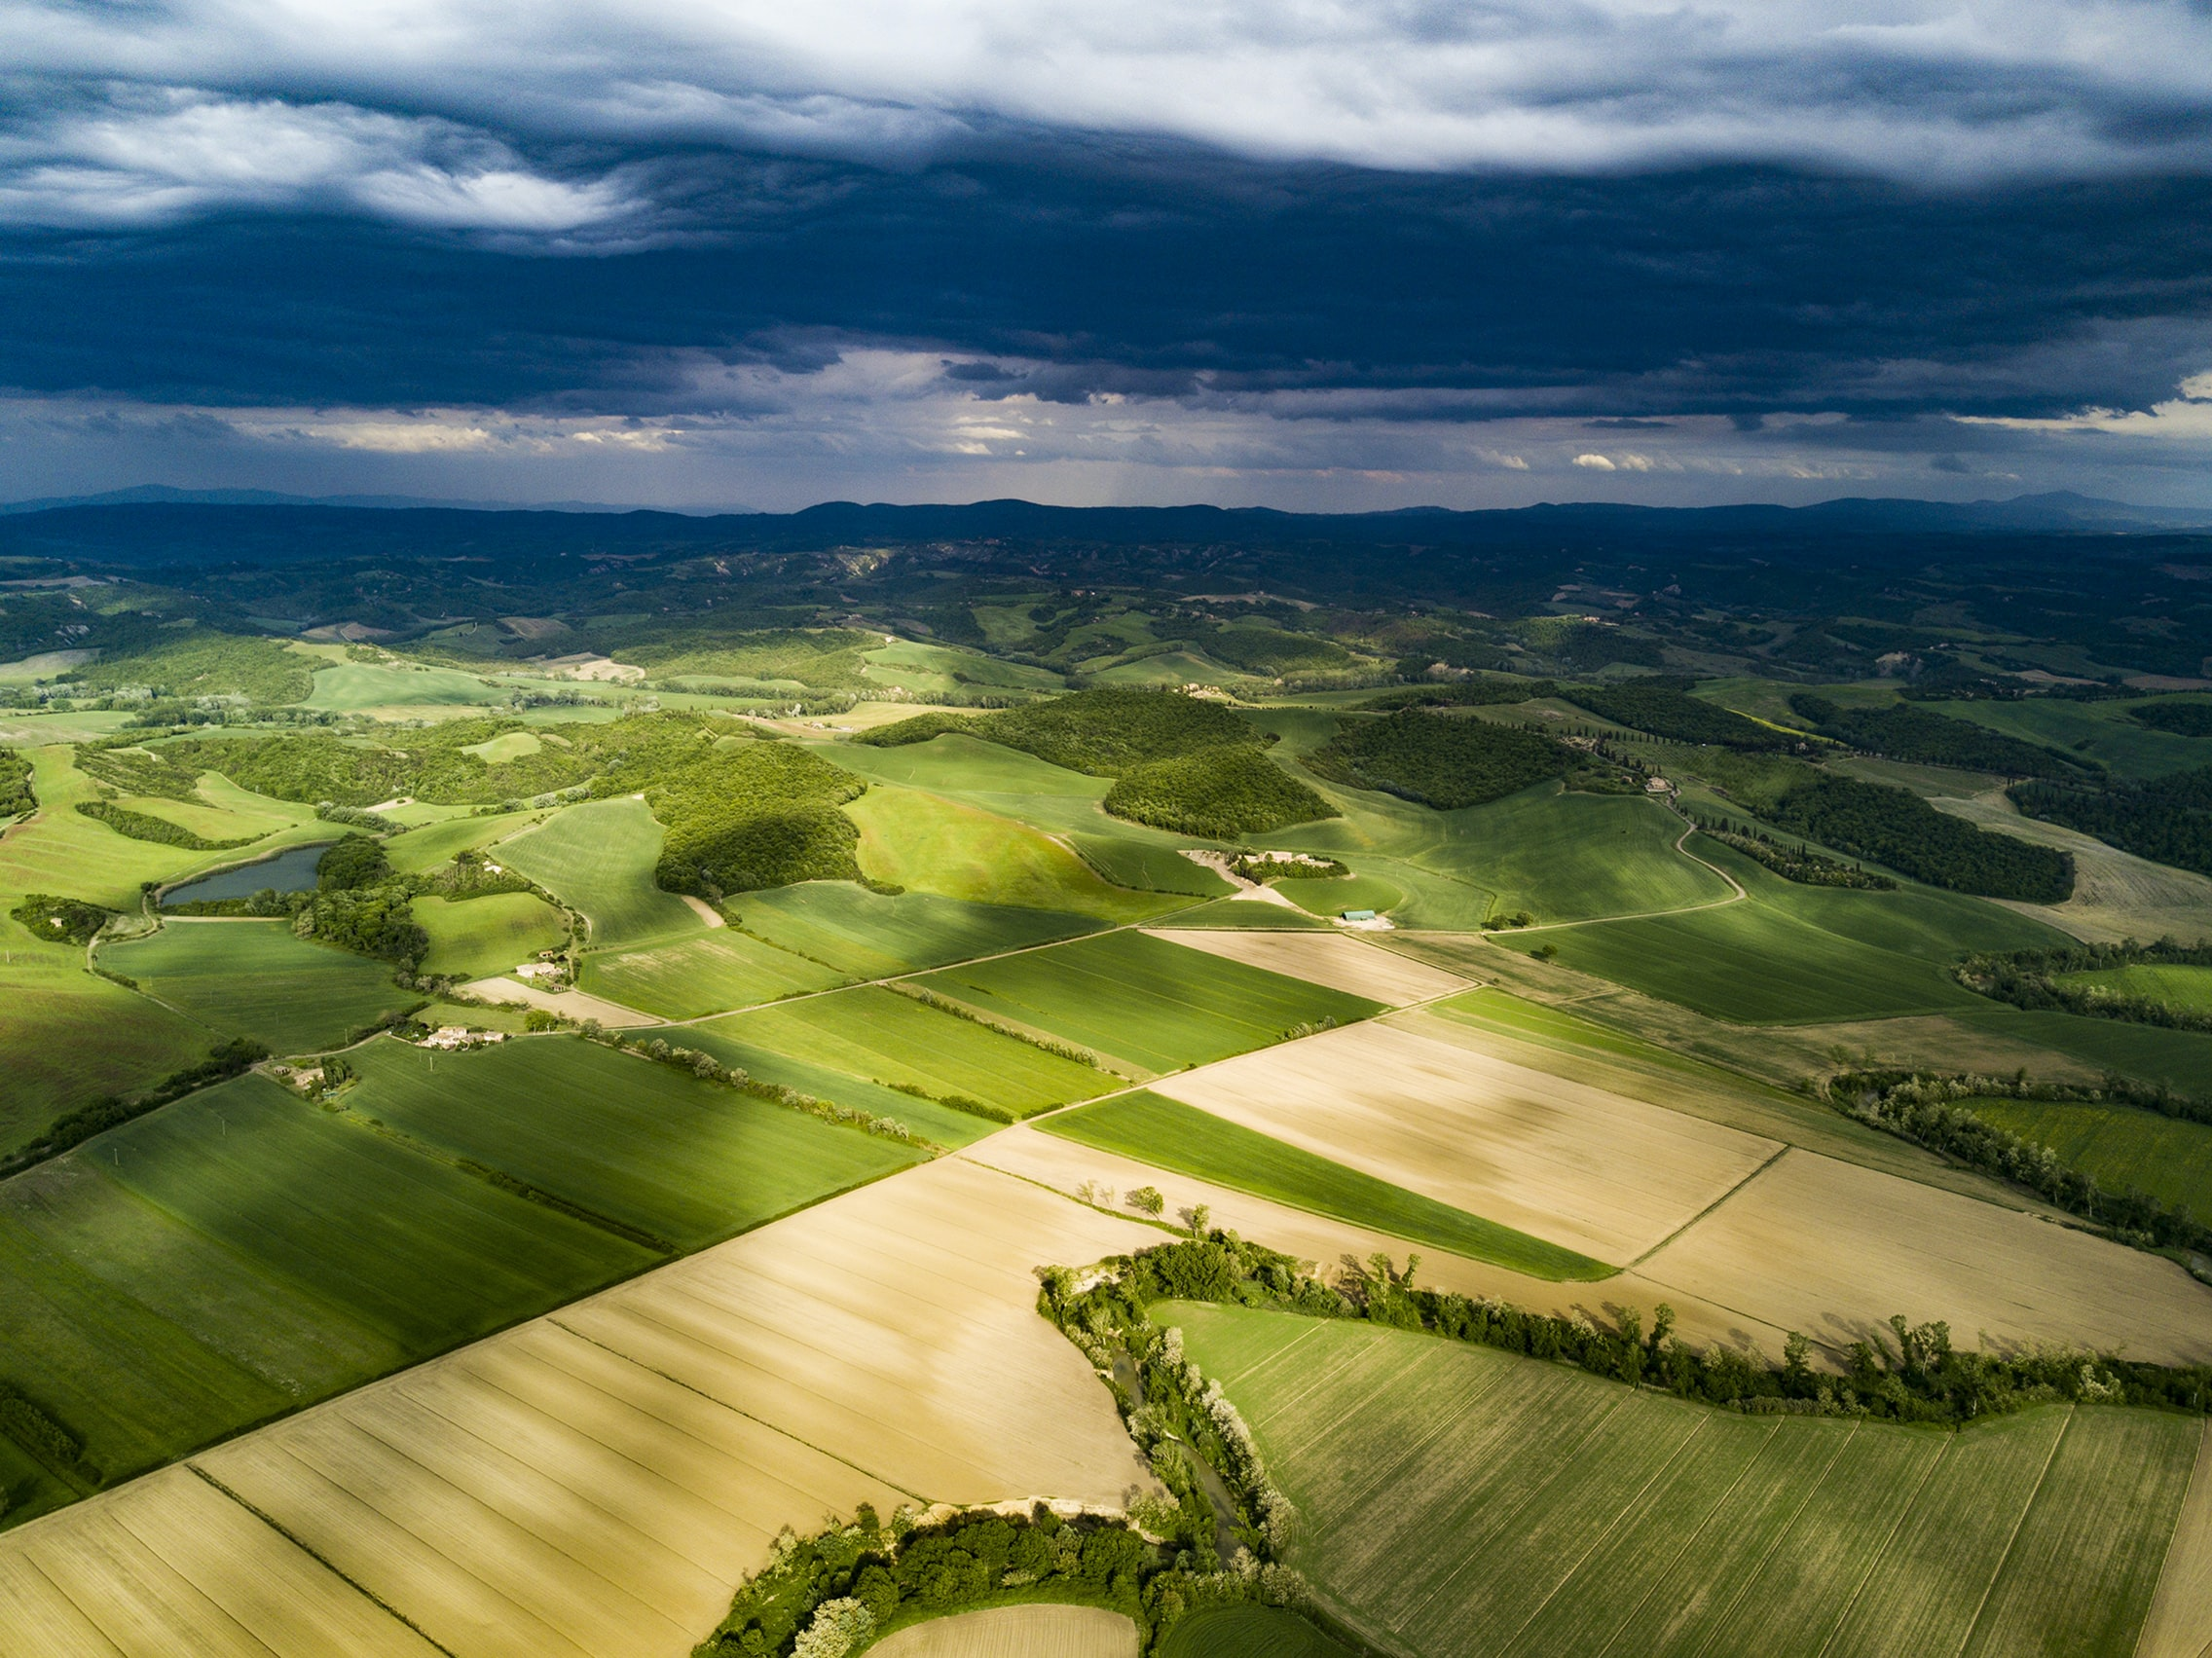 A drone shot of a patchwork of green fields in Tuscany